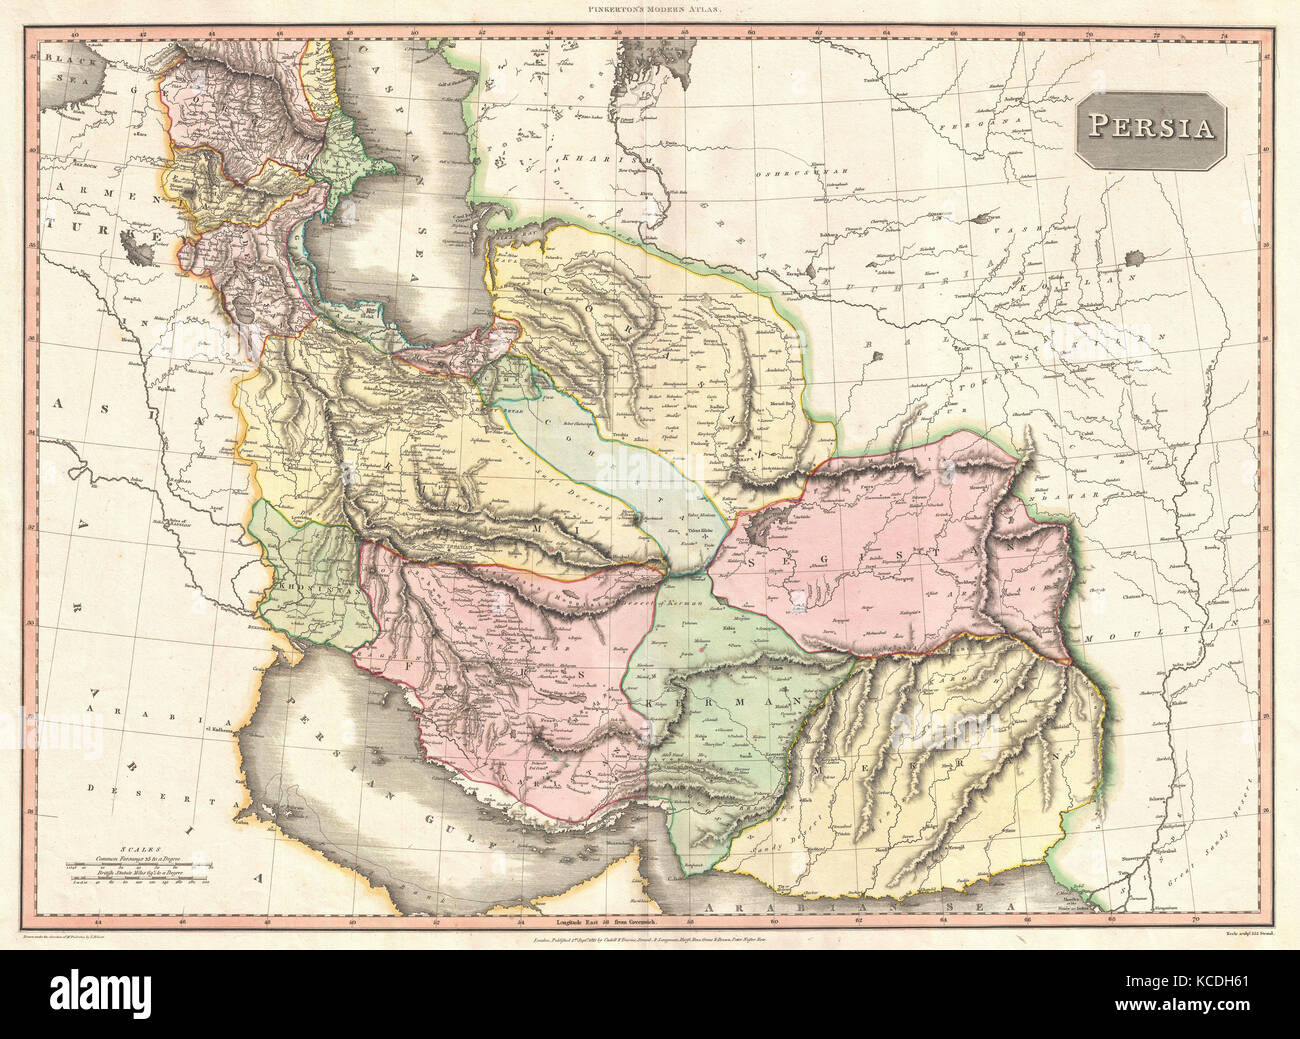 1811 pinkerton map of persia iraq iran afghanistan john stock 1811 pinkerton map of persia iraq iran afghanistan john pinkerton 1758 1826 scottish antiquarian cartographer uk gumiabroncs Image collections